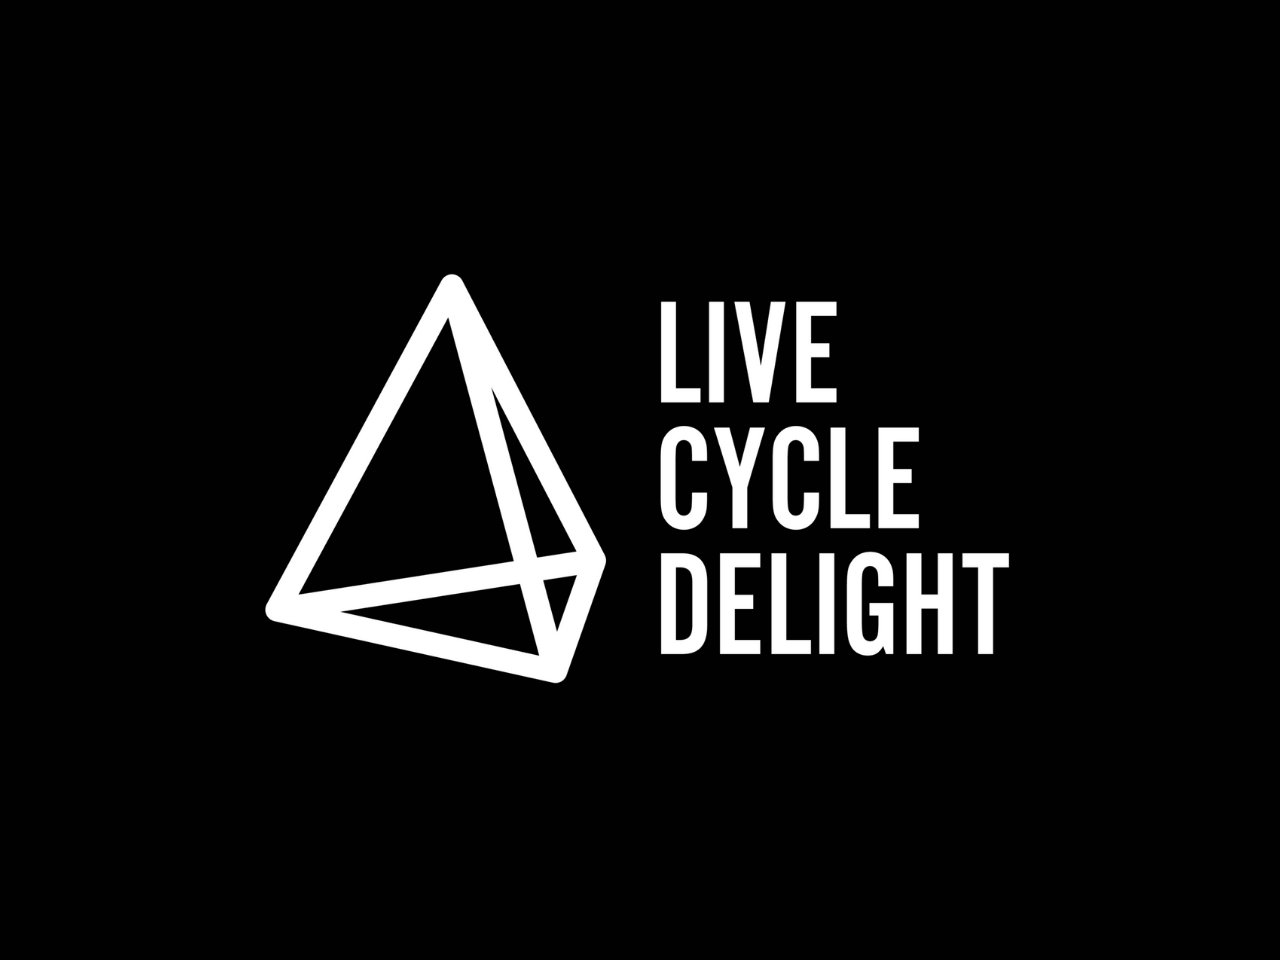 Life Cycle Delight